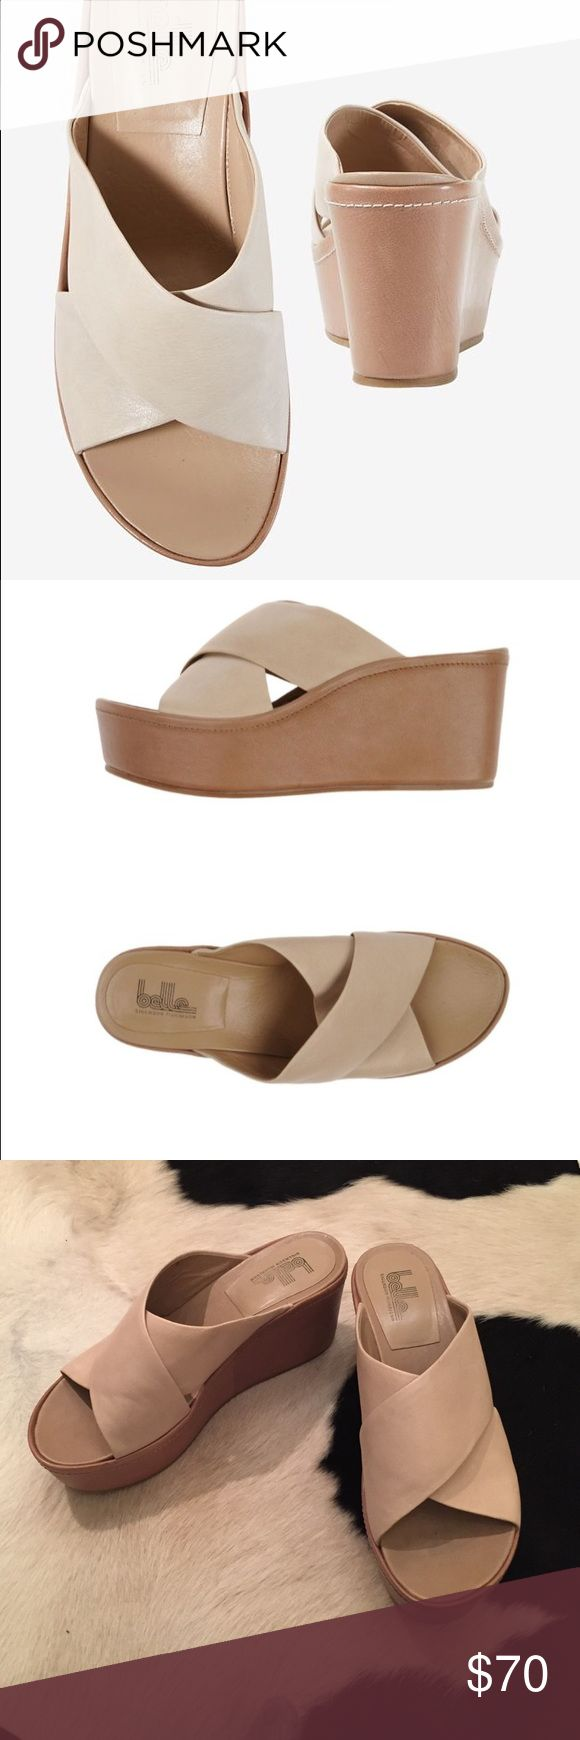 Belle NY Sigerson Morrison Natural Sandals. Size 7 Leather, no appliqués, solid color, round toeline, rubber sole, wedge heel, covered wedge. Soft Leather. Color: natural. Like new. Worn once. US 7. Belle by Sigerson Morrison Shoes